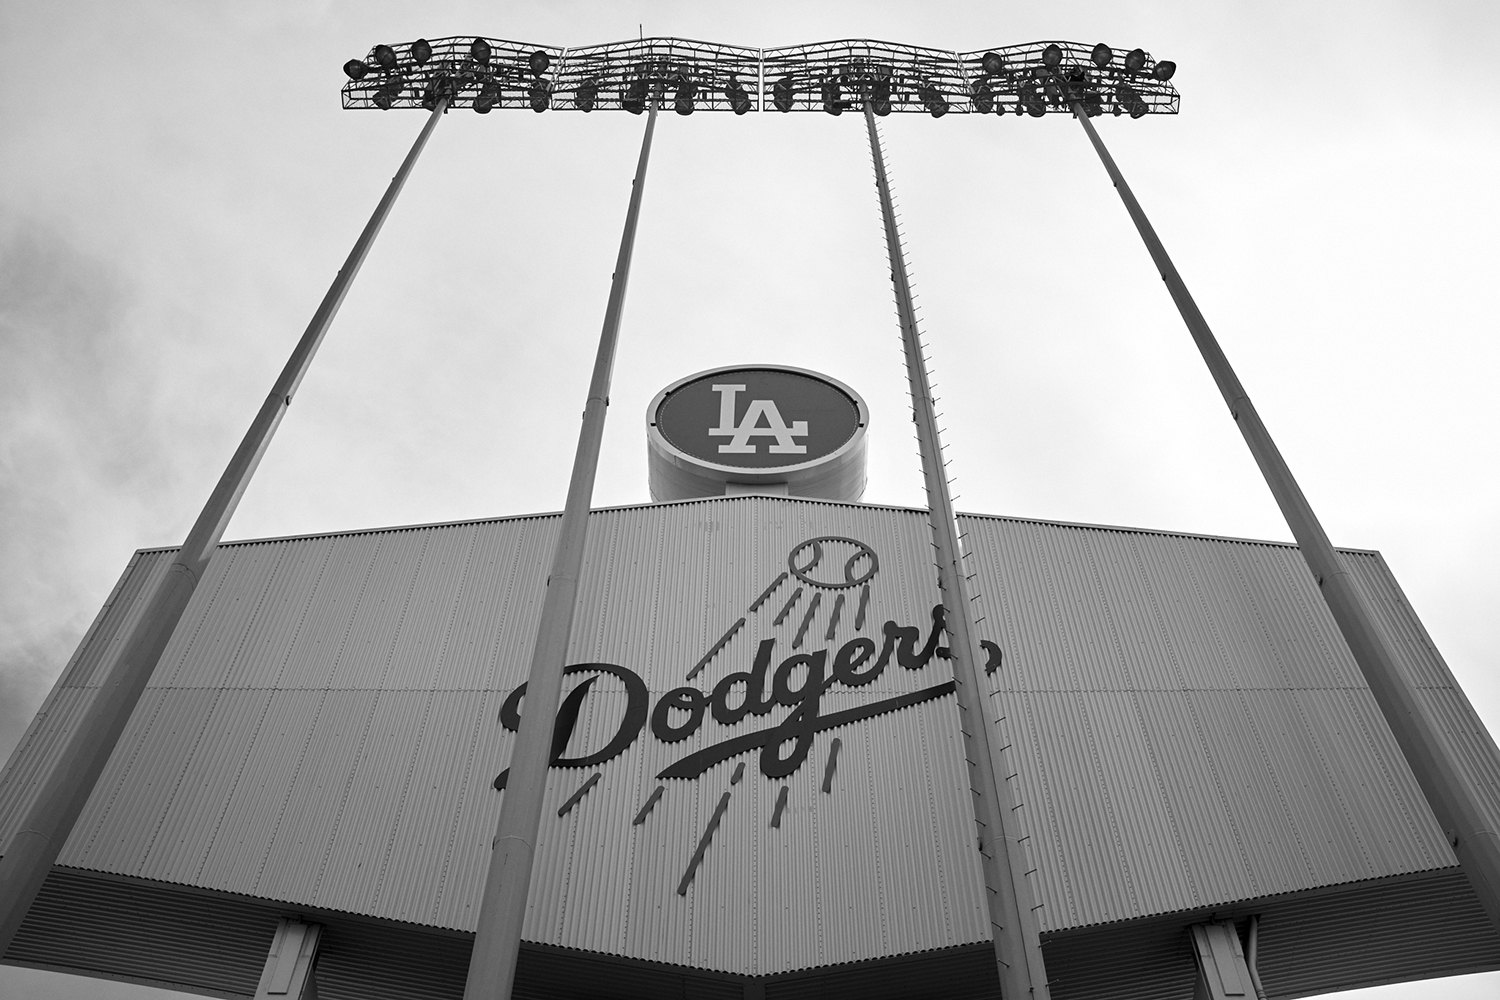 kyle_ellis_photography_dodgers_baseball_0956.jpg